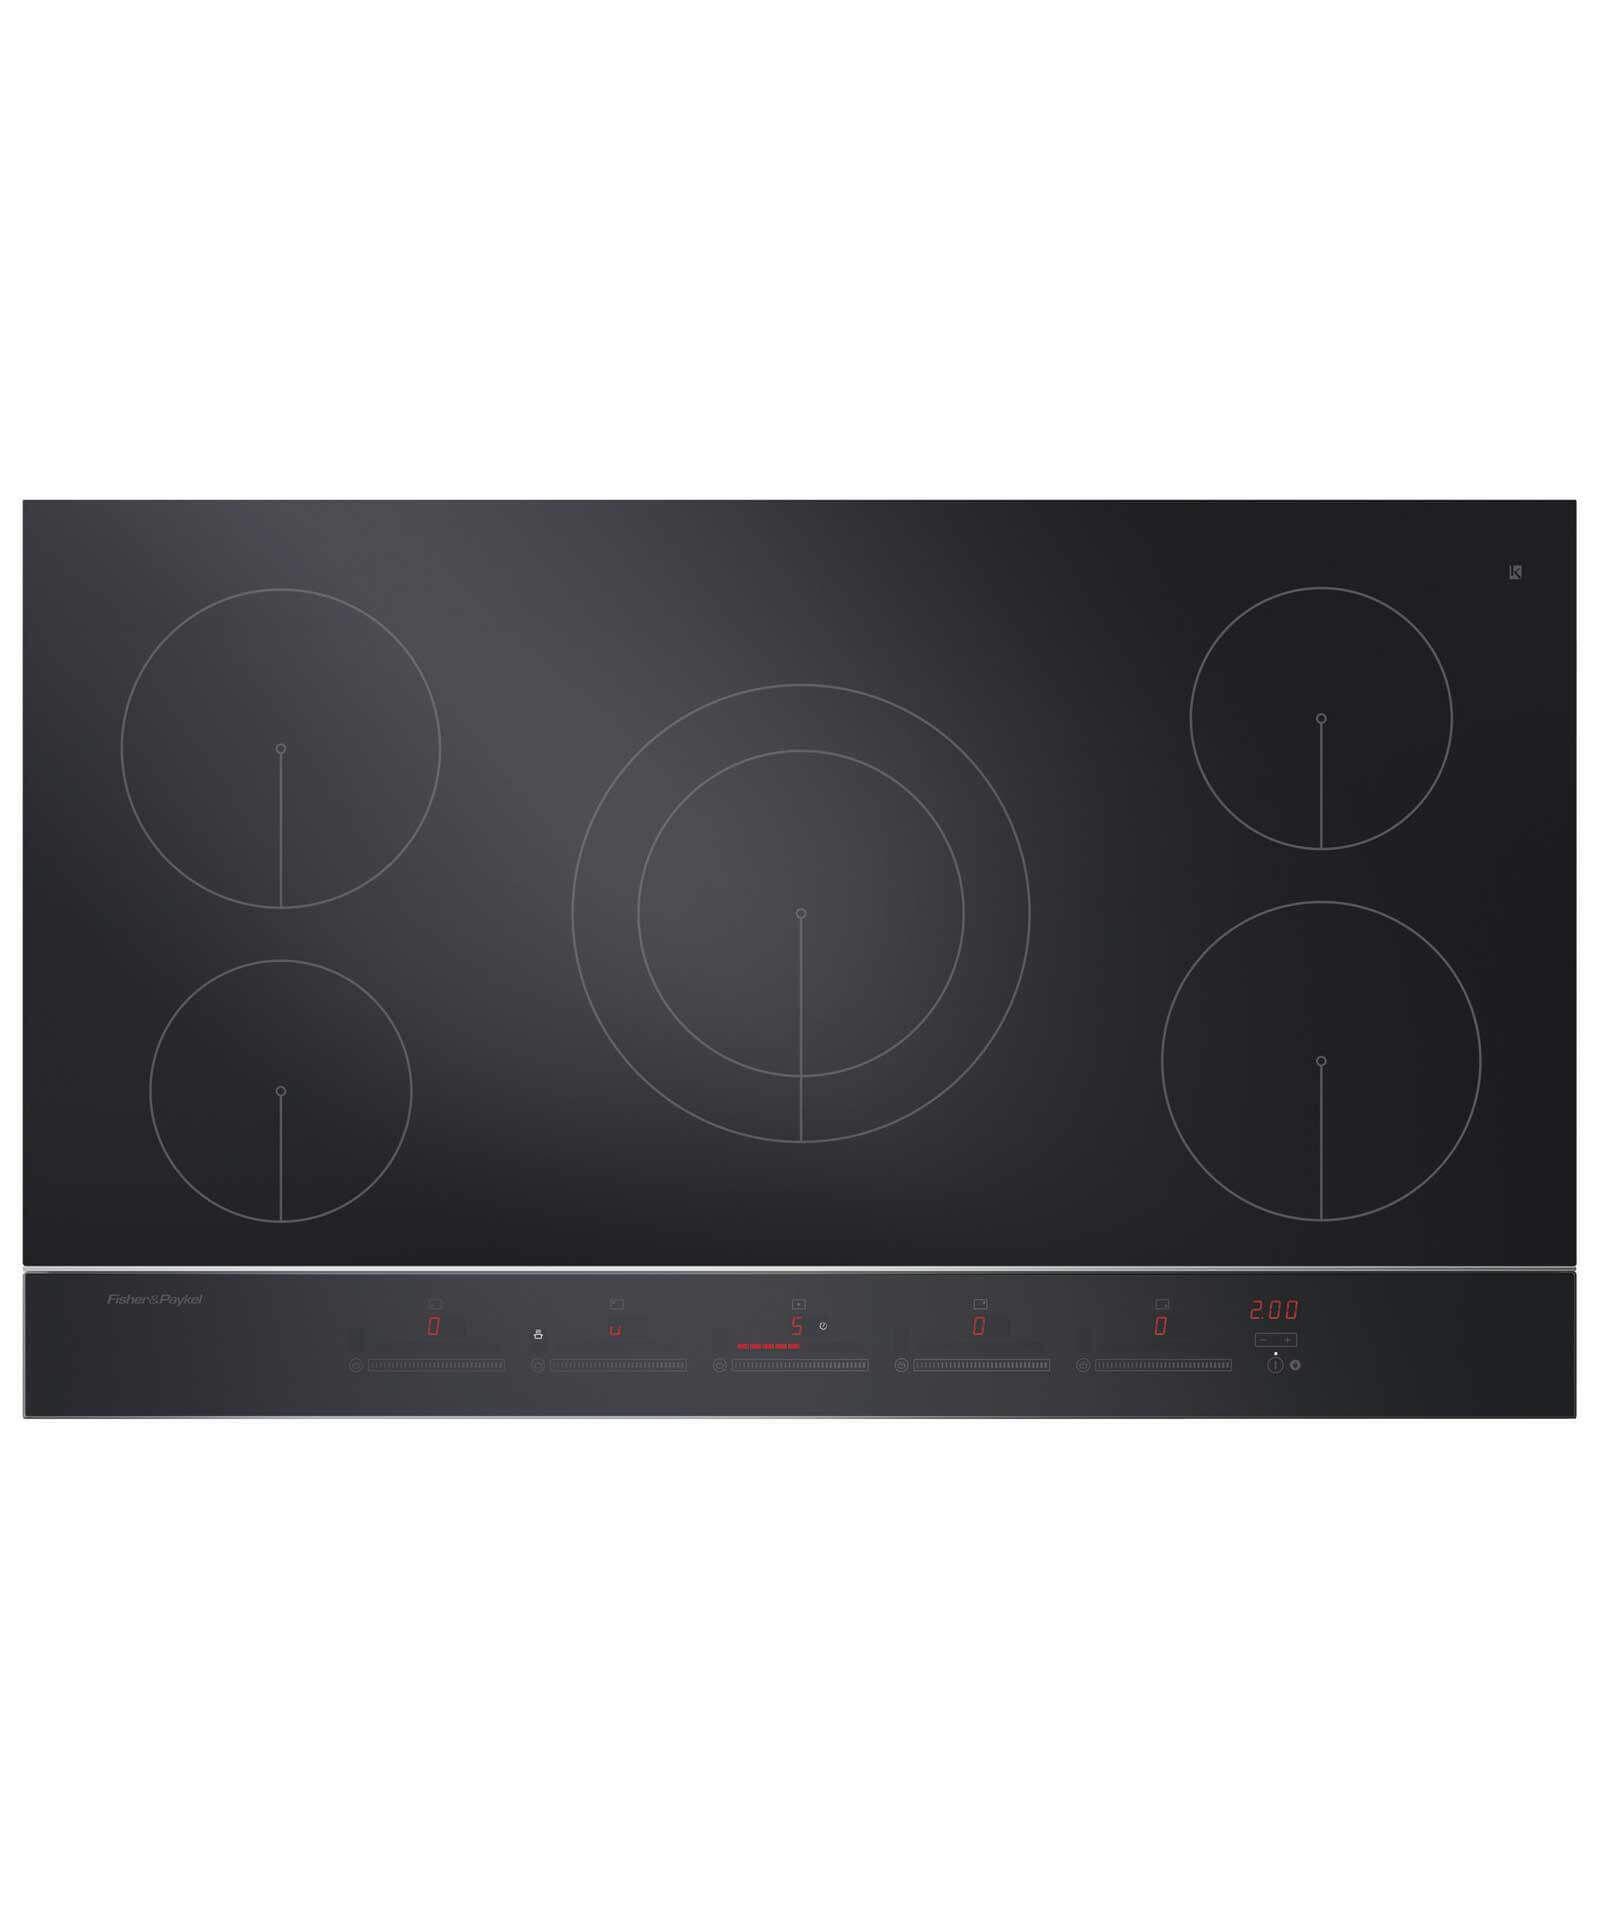 Fisher Paykel Ci365dtb2 36 5 Zone Touch Slide Induction Cooktop 81036 Induction Cooktop Cooktop Induction